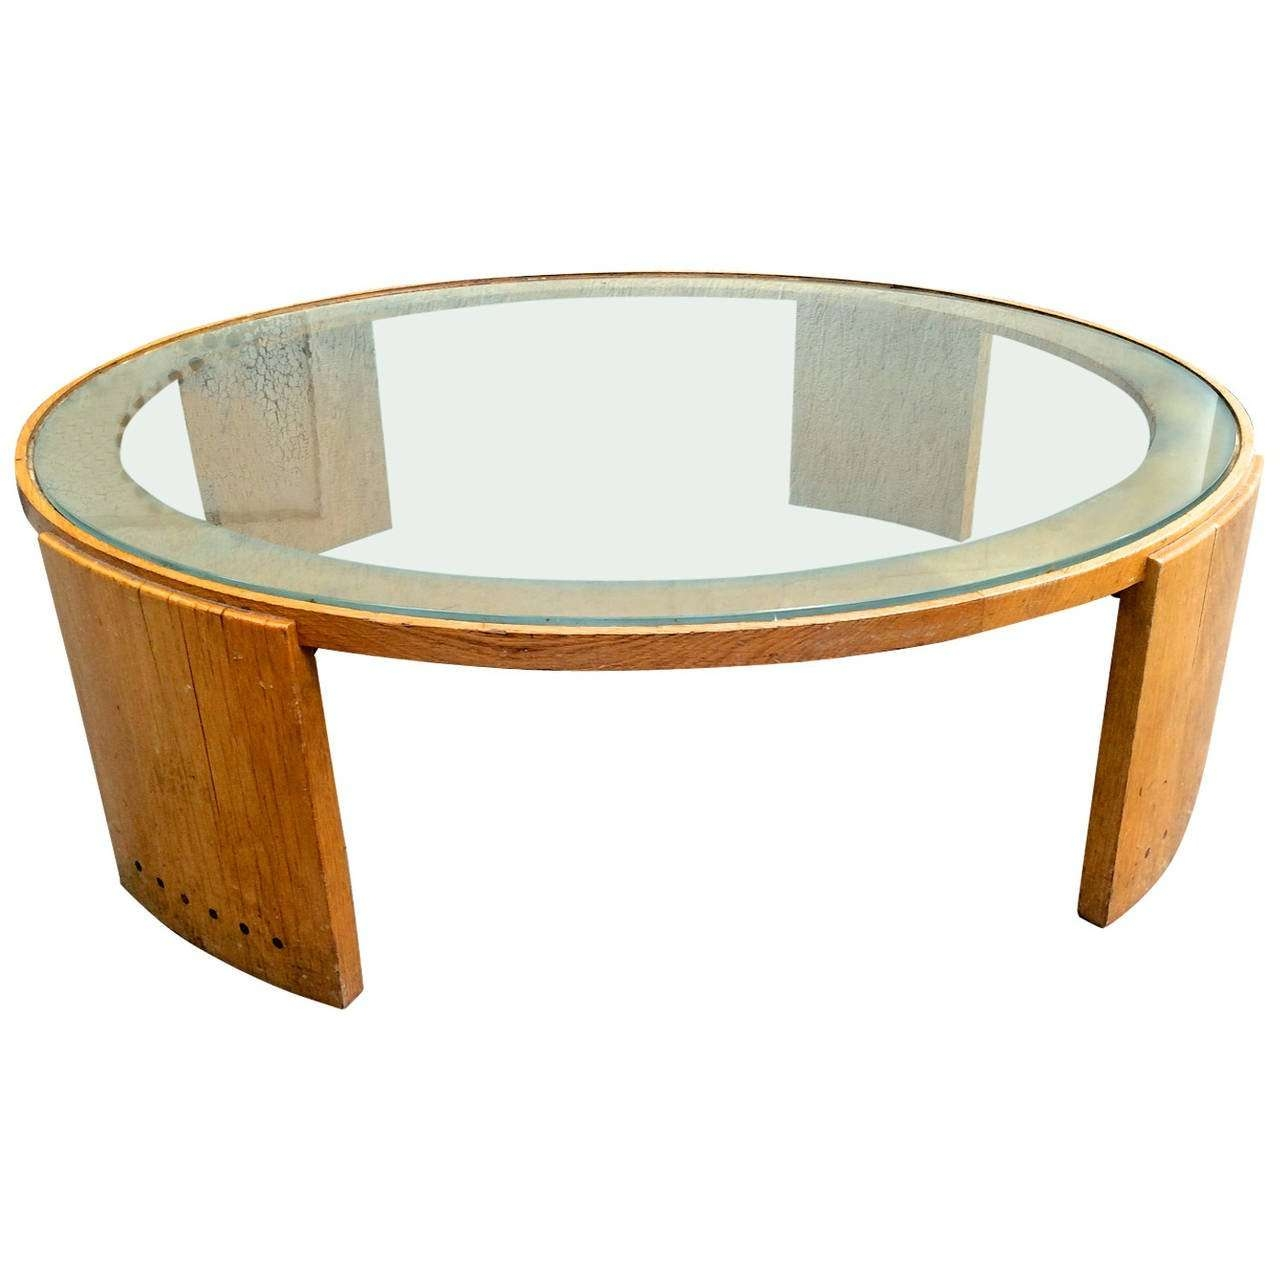 Jacques Adnet Very Large Round Coffee Table In Oak And Glass Top Throughout Most Up To Date Very Large Coffee Tables (Gallery 16 of 20)